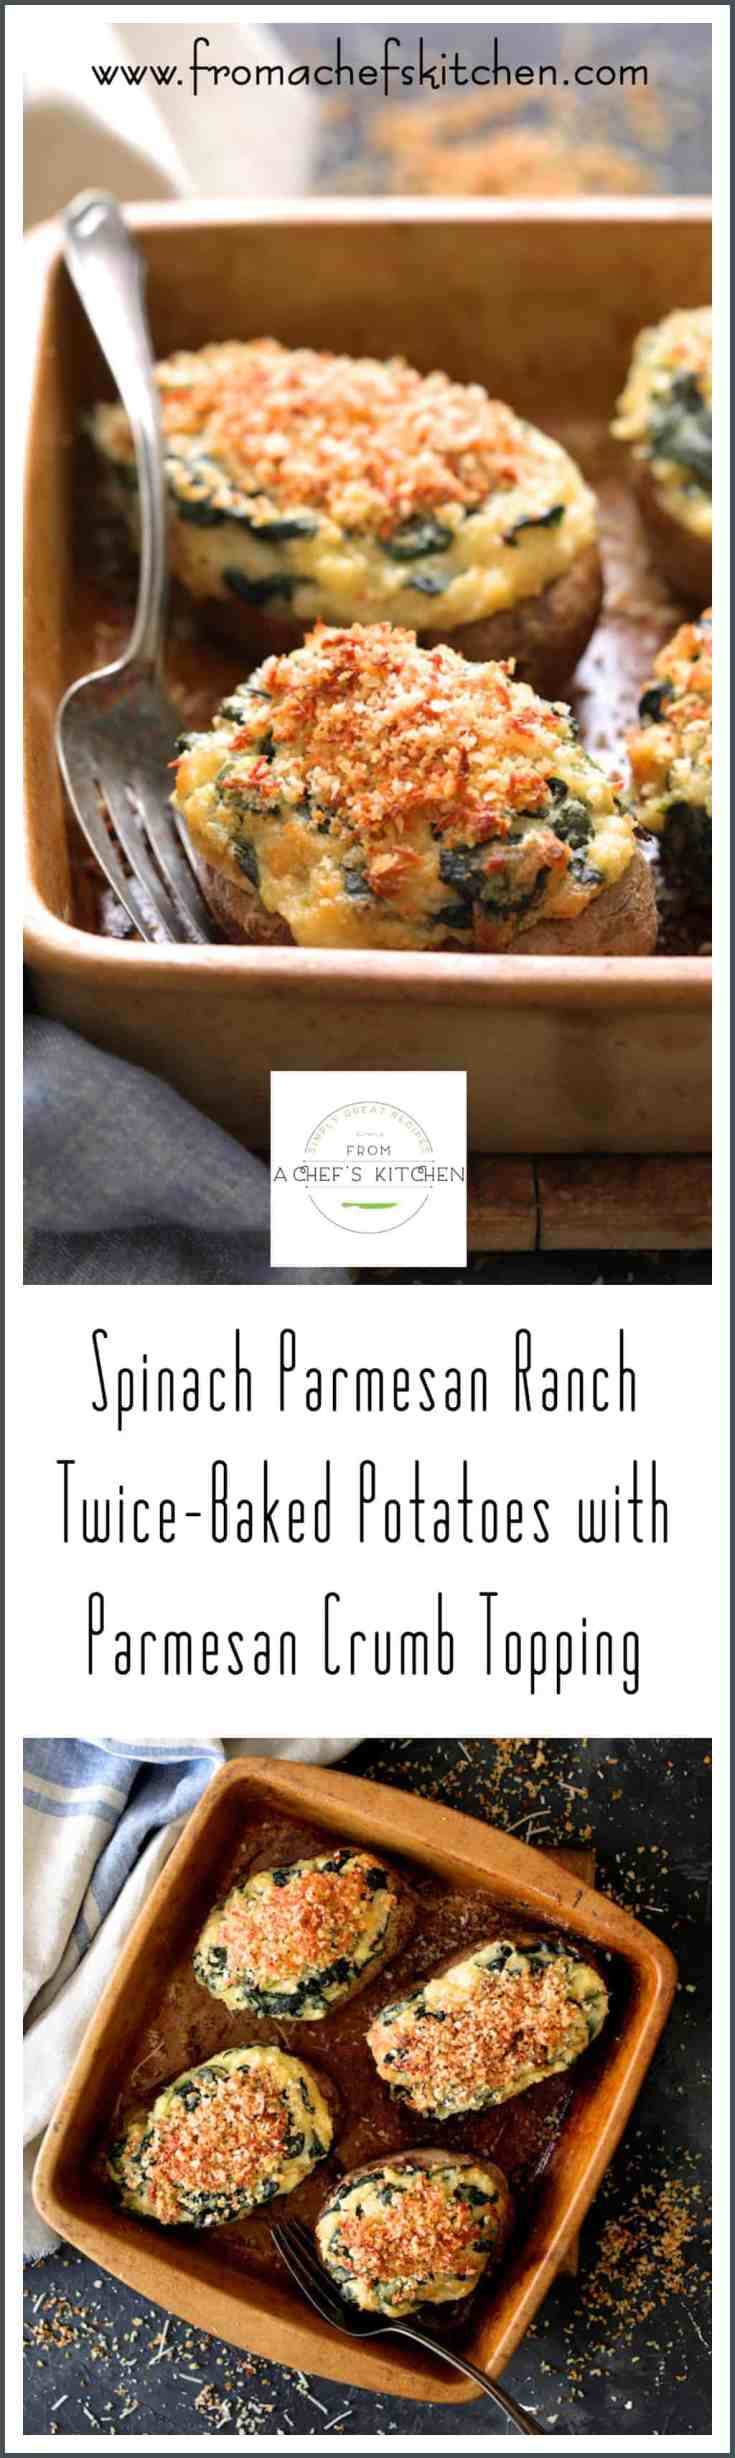 Spinach Parmesan Ranch Twice Baked Potatoes with Parmesan Crumb Topping are pillows of potato perfection!  #spinach #parmesan #ranch #potatoes #twicebakedpotatoes #parmesan